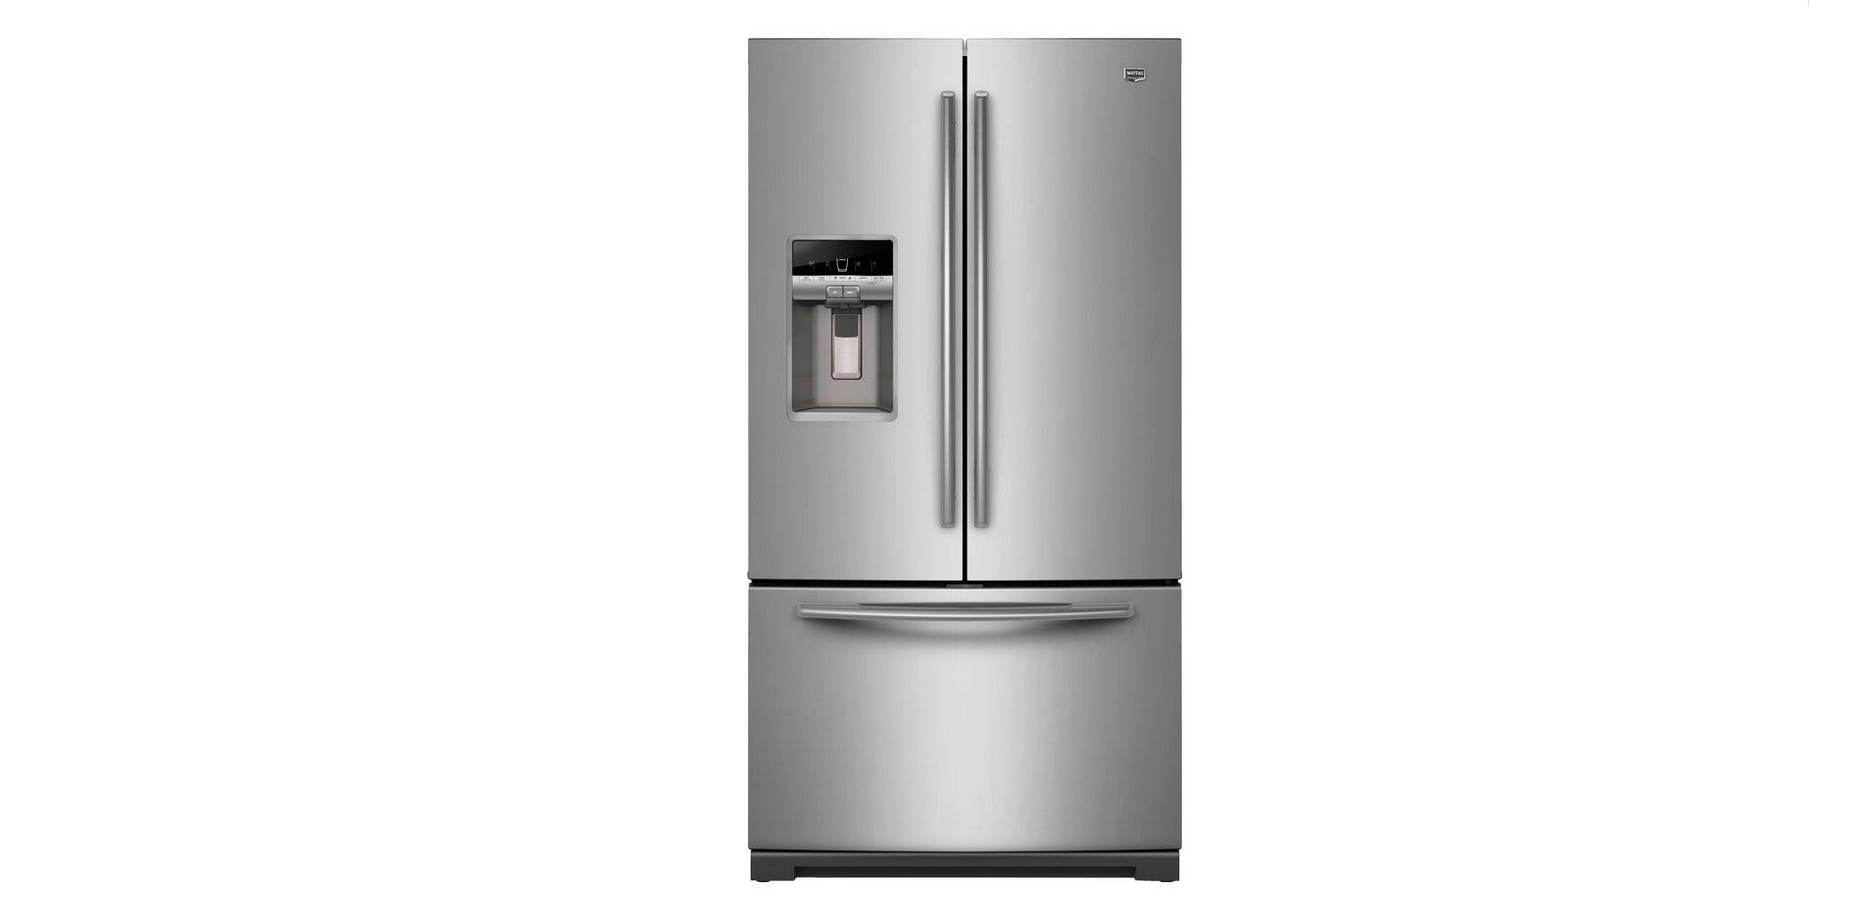 Maytag French Door Refrigerator With Cool Core Temperature